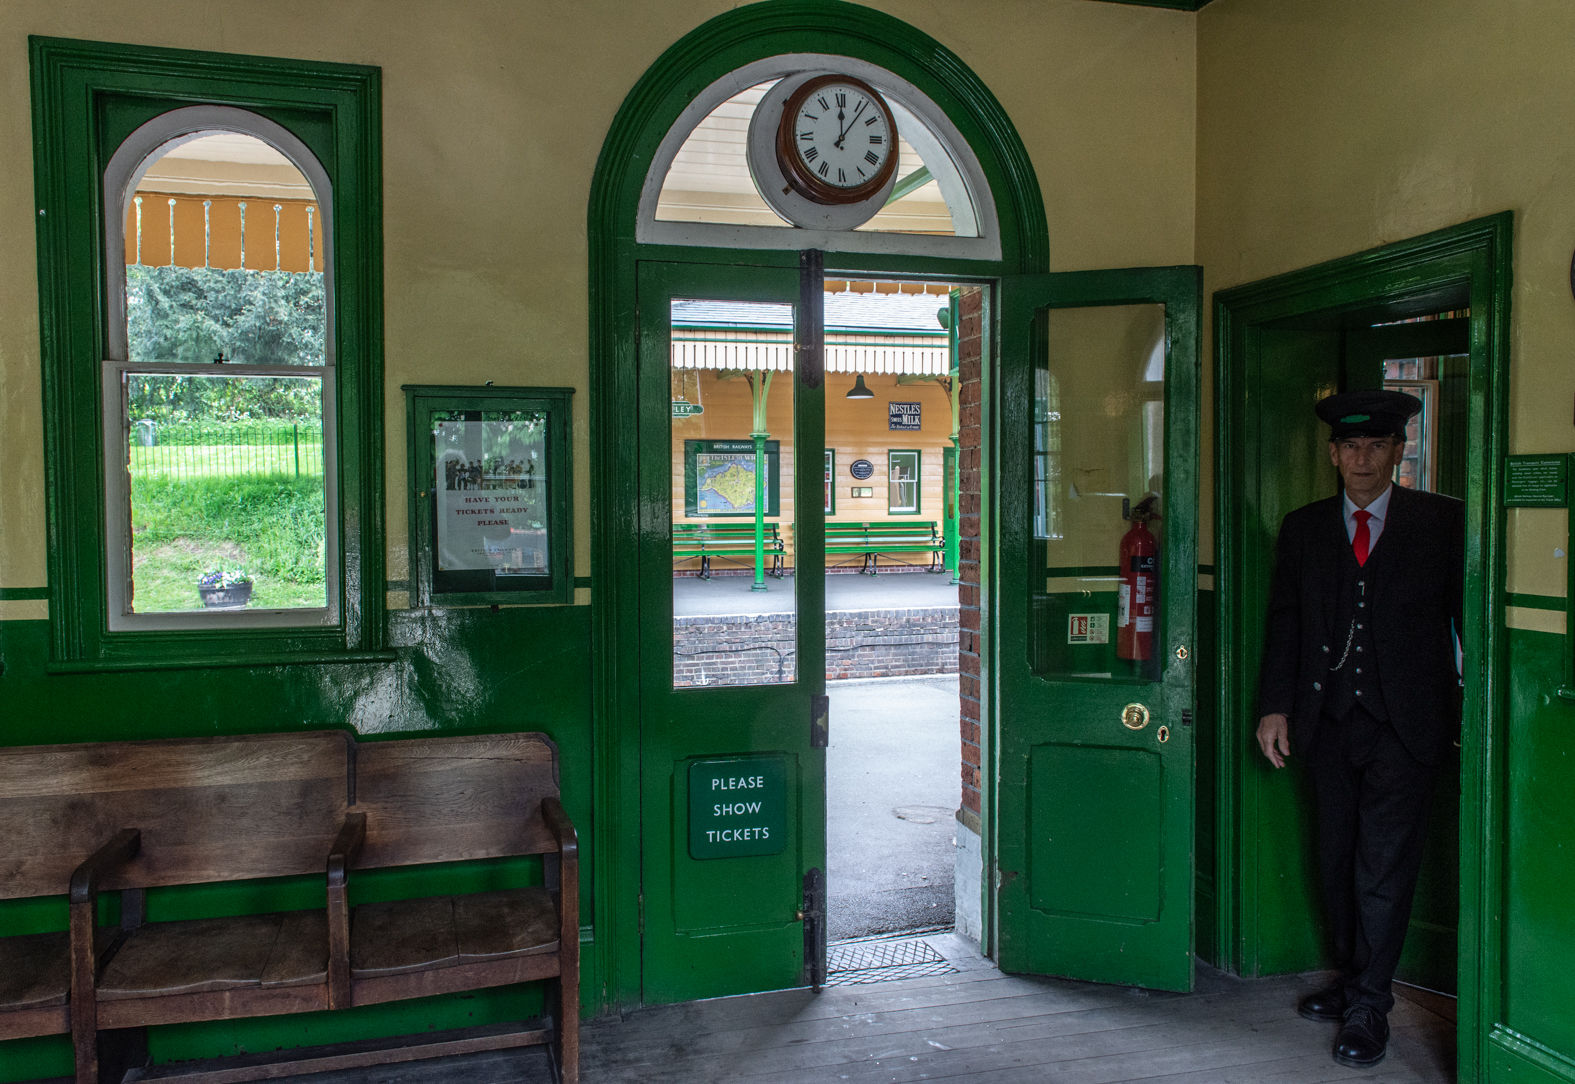 Ropley station, Watercress Line, Hampshire